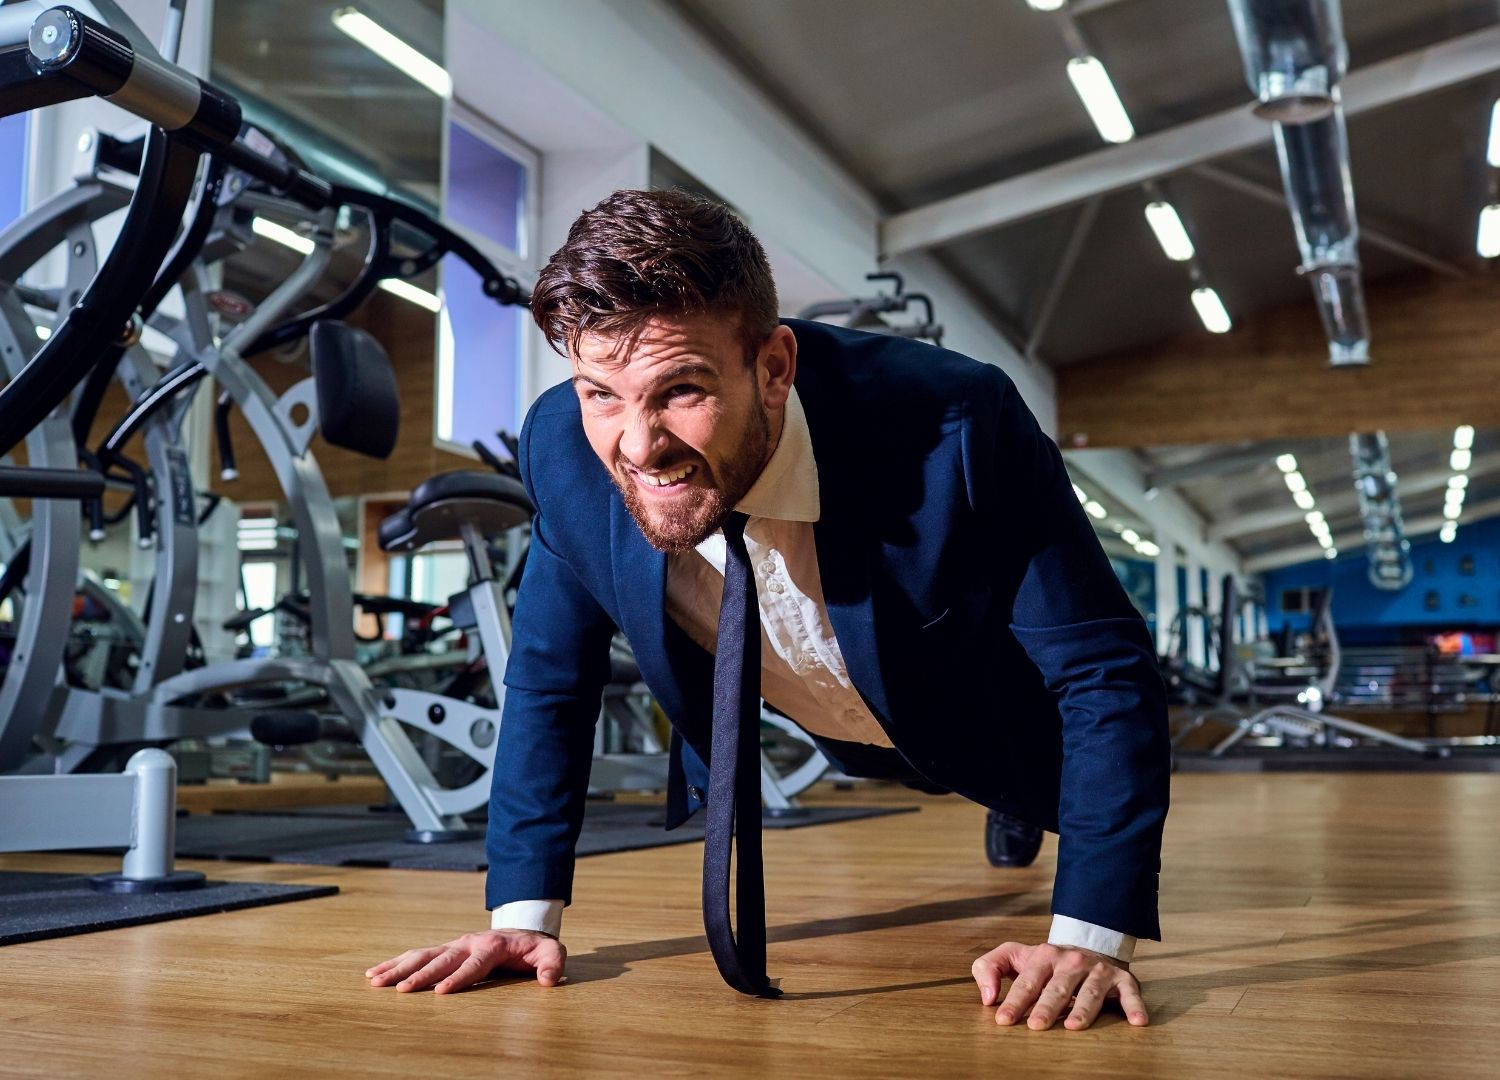 Man performing push-ups in a corpoarte suit